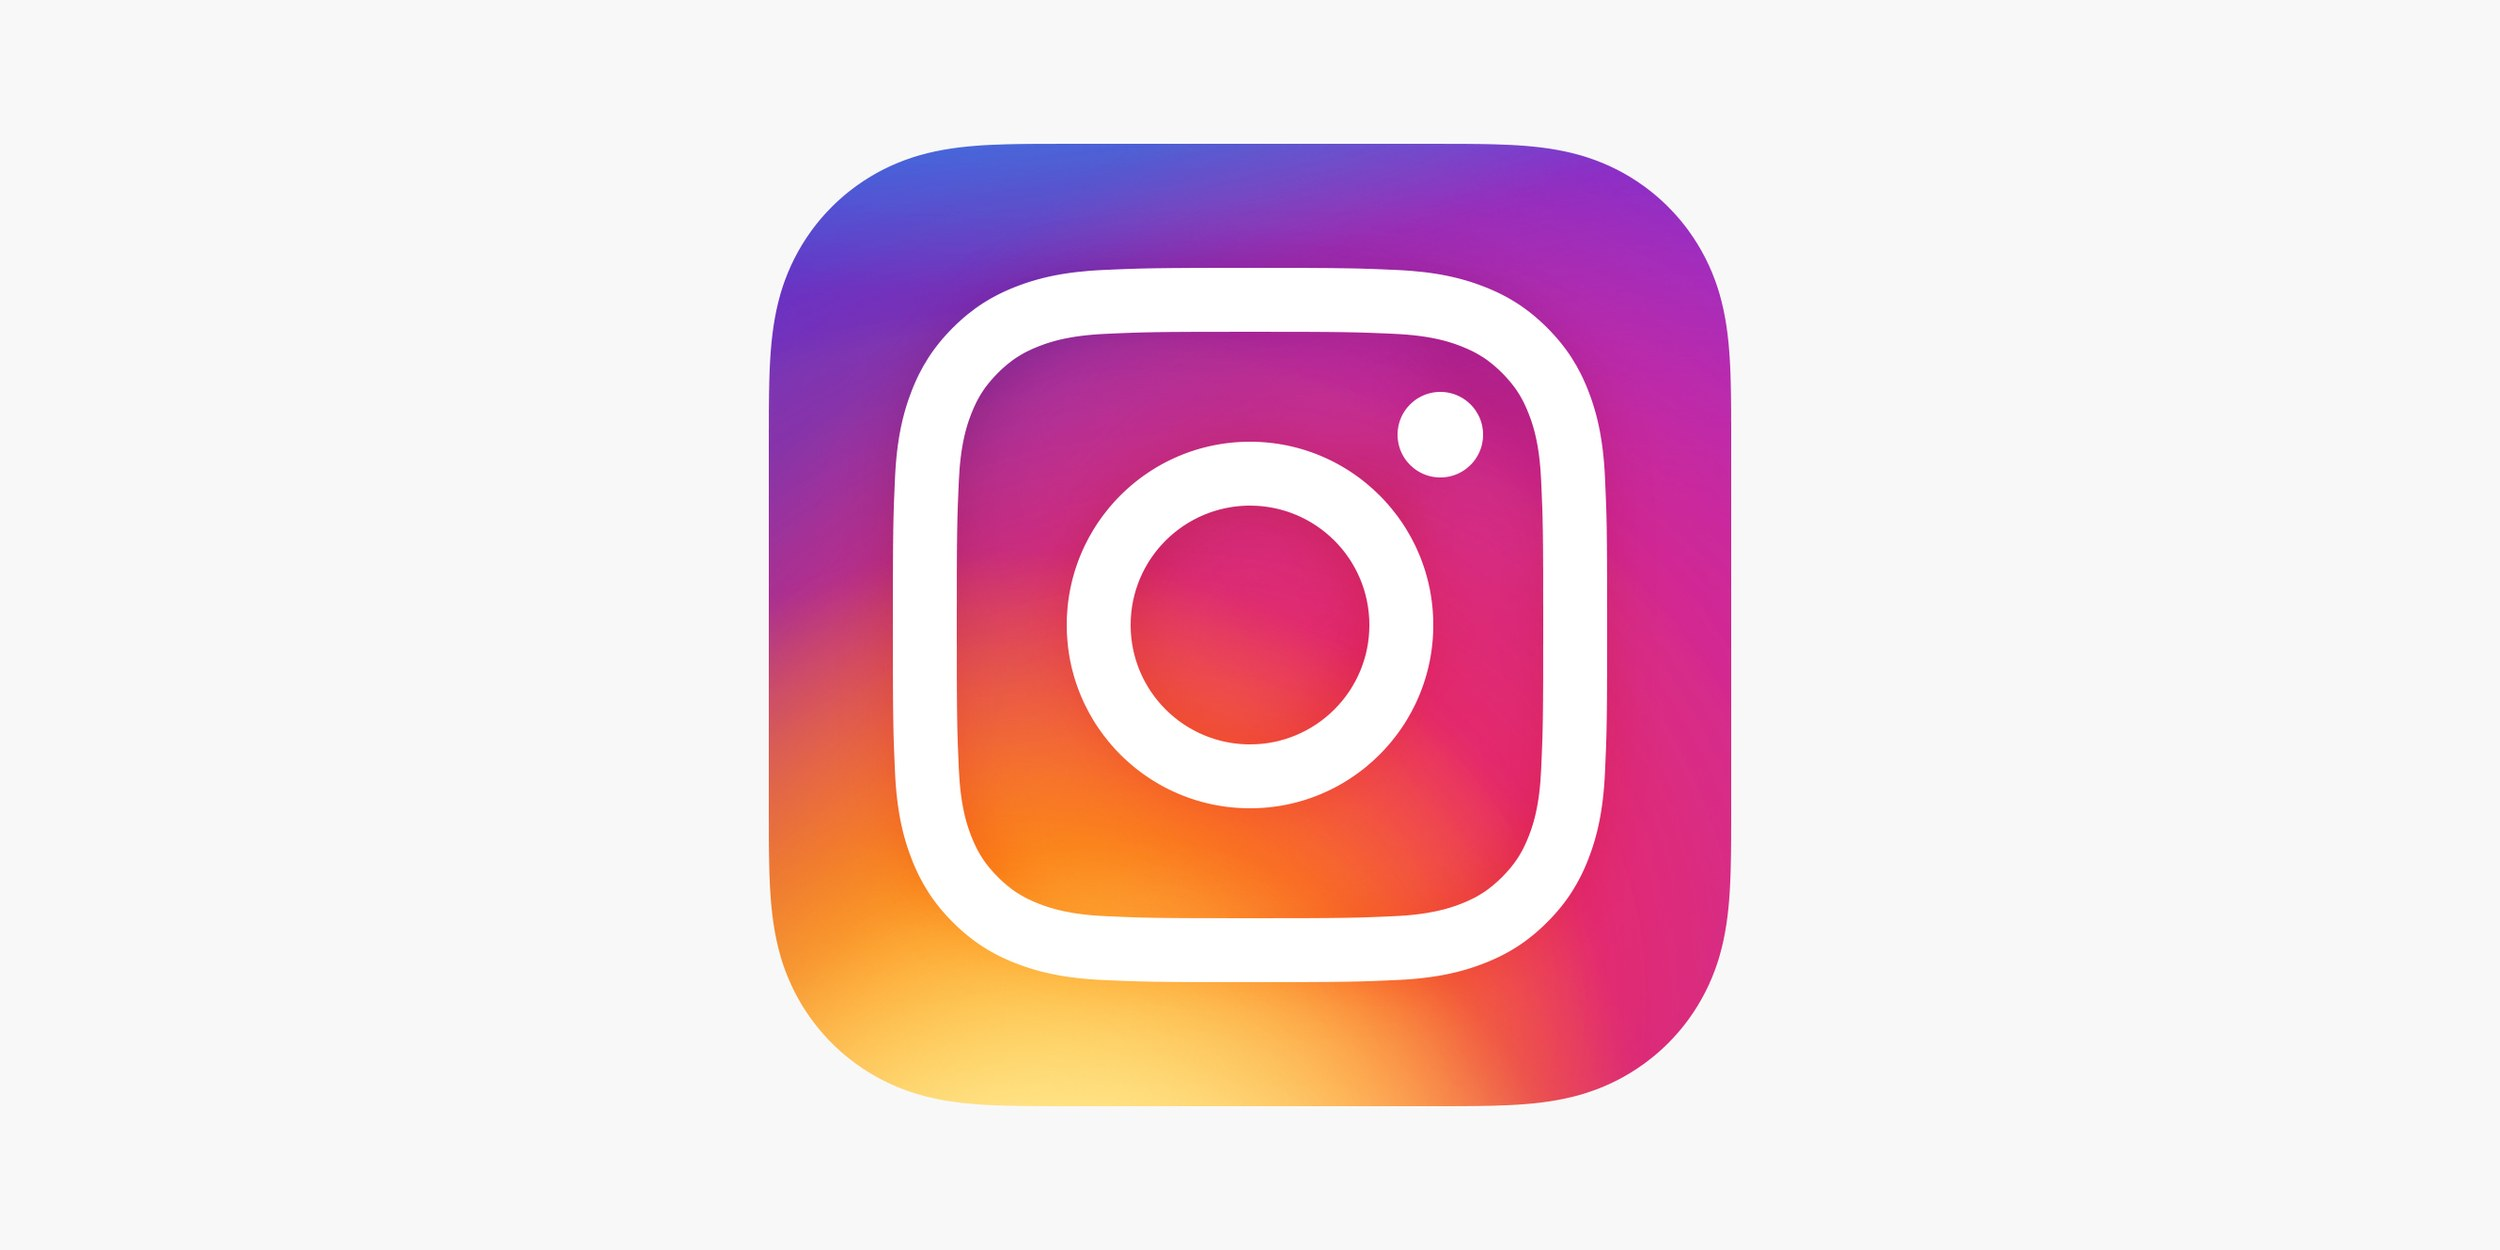 How to use Instagram Superzoom feature?